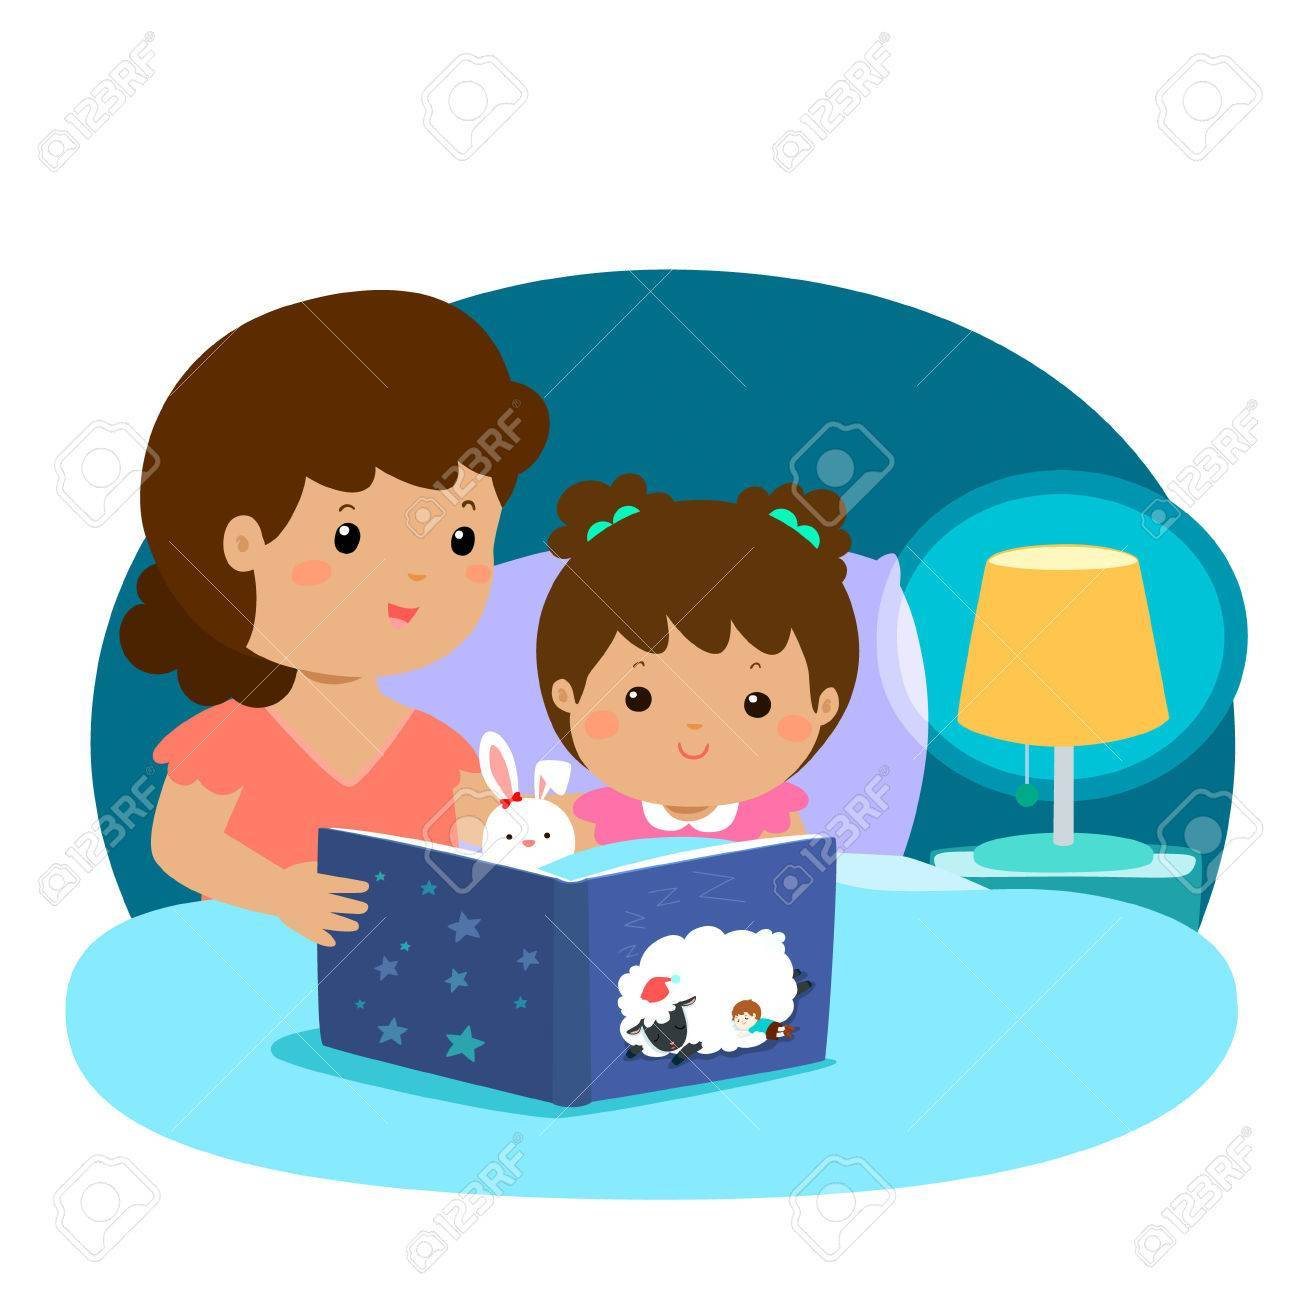 clip art freeuse library A vector illustration of. Bedtime story clipart